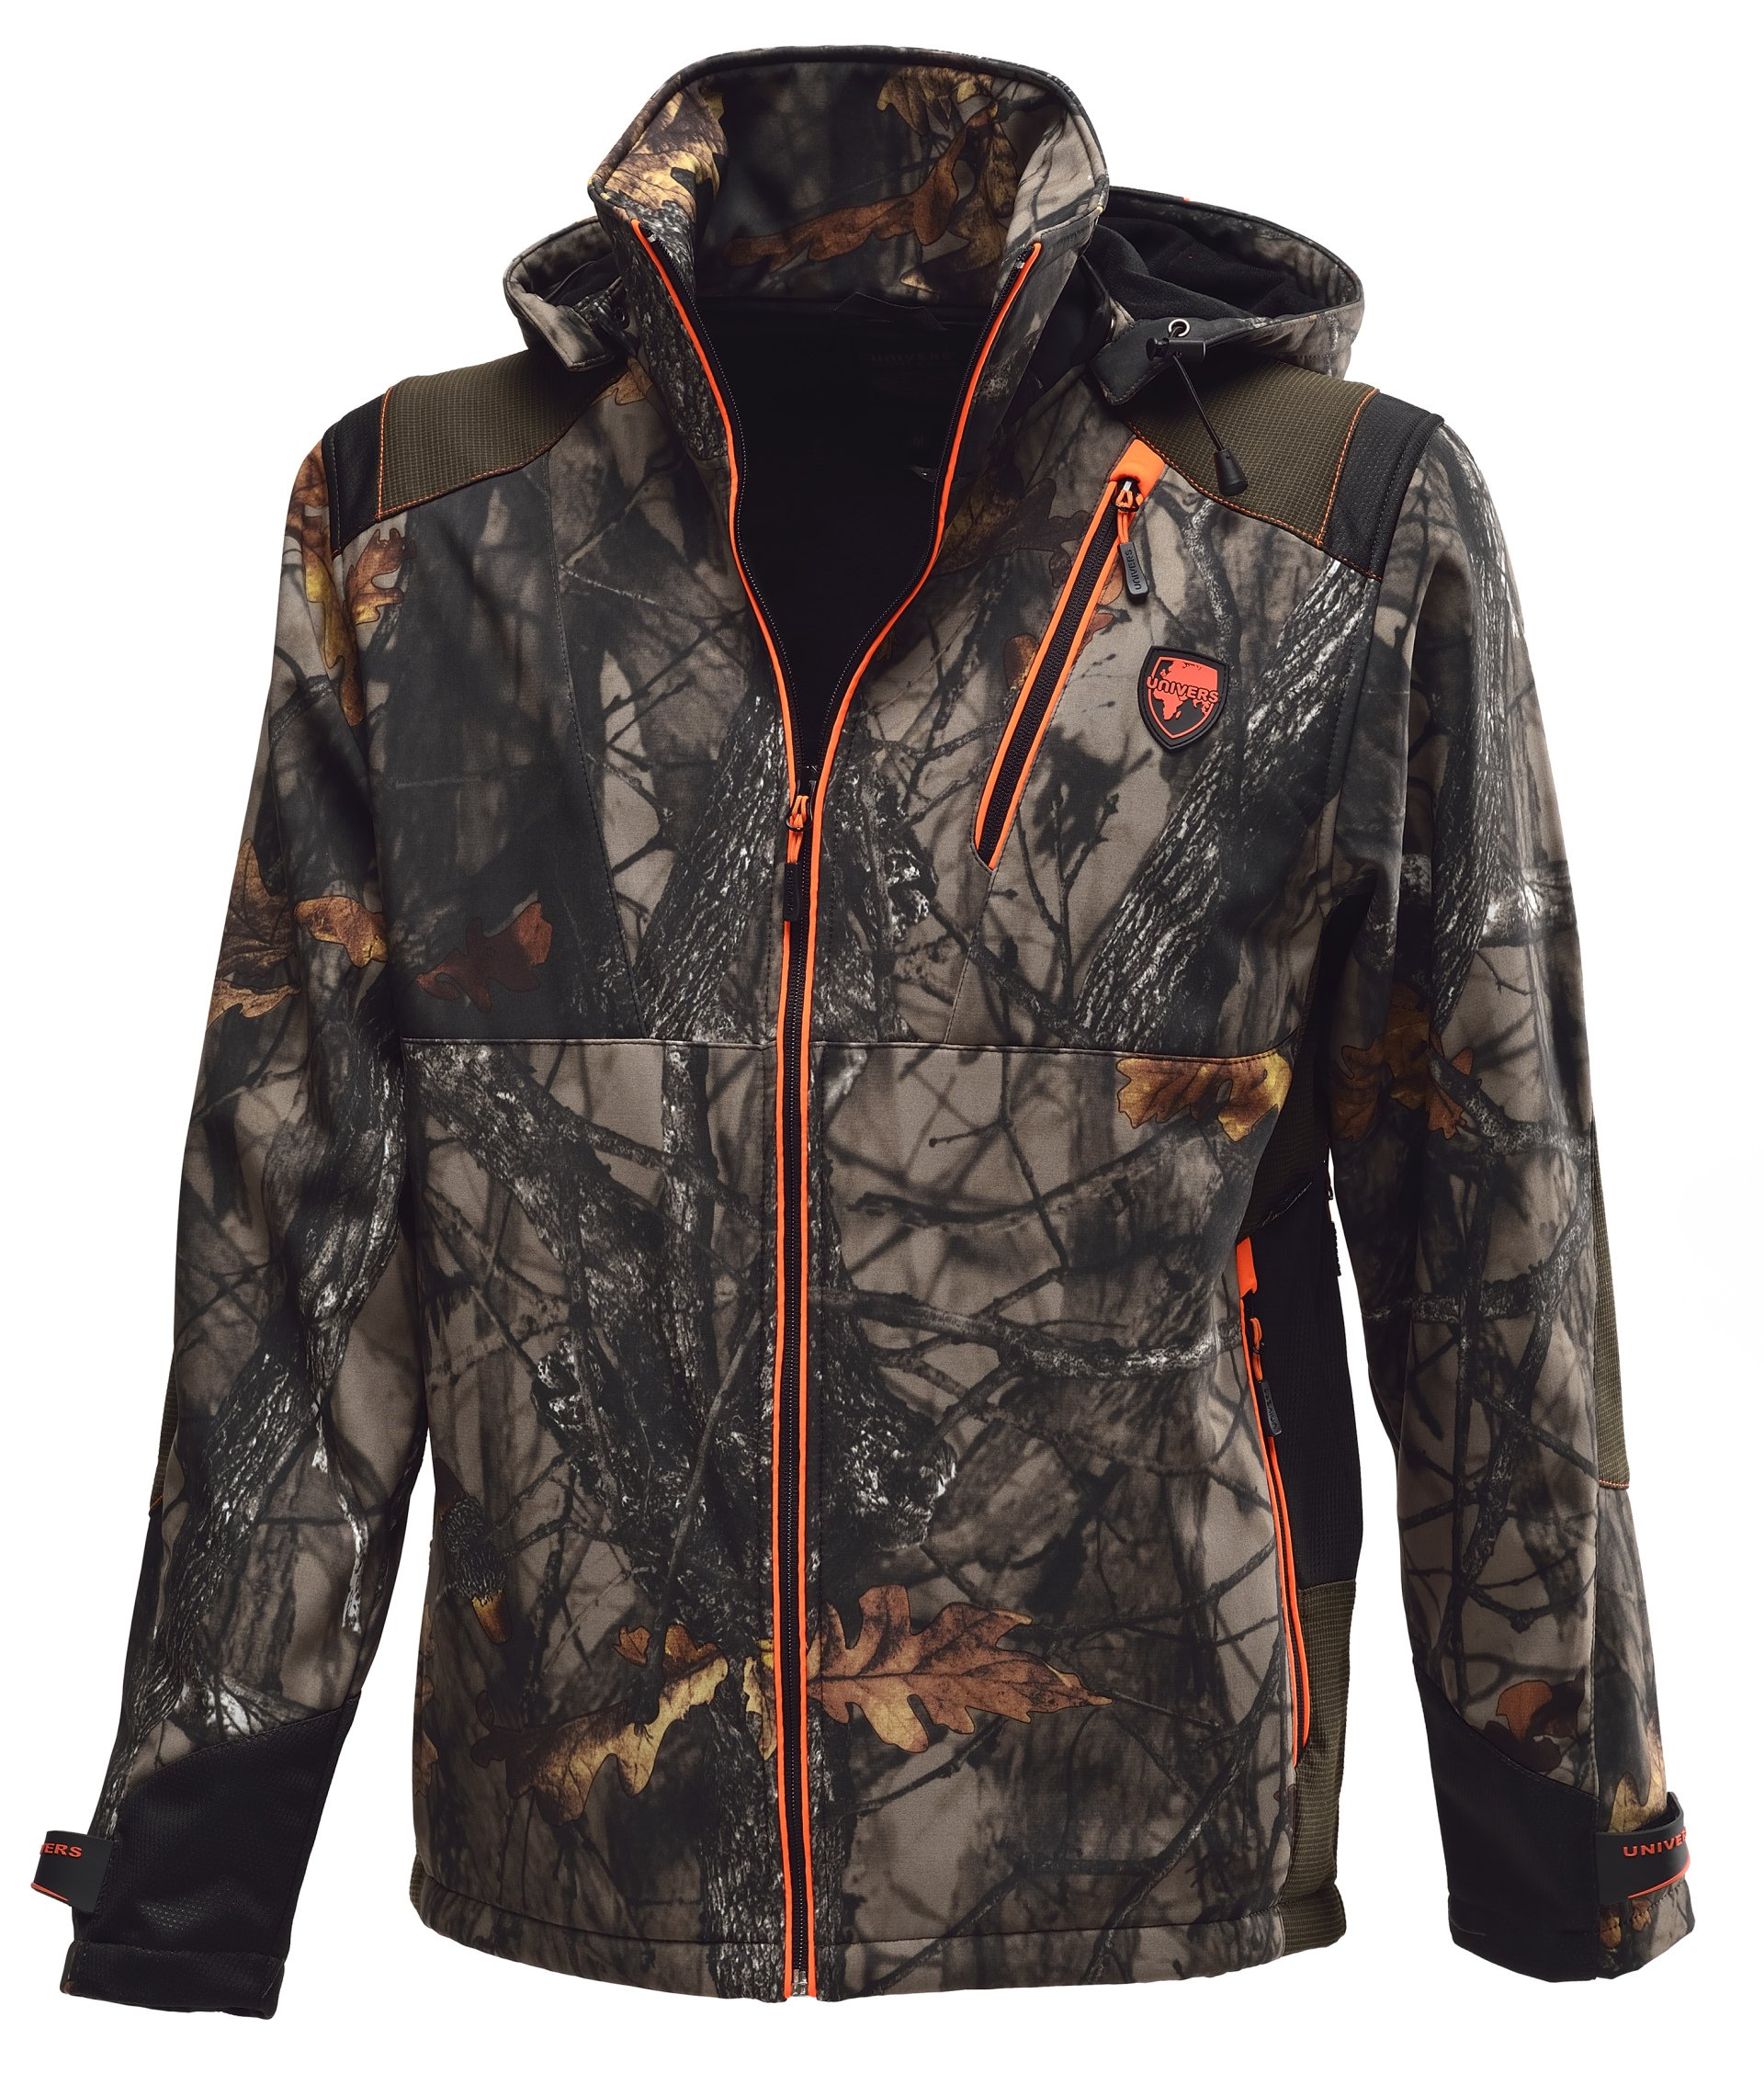 Univers Waterproof SOFTSHELL CAMO JACKET 91021 / 159